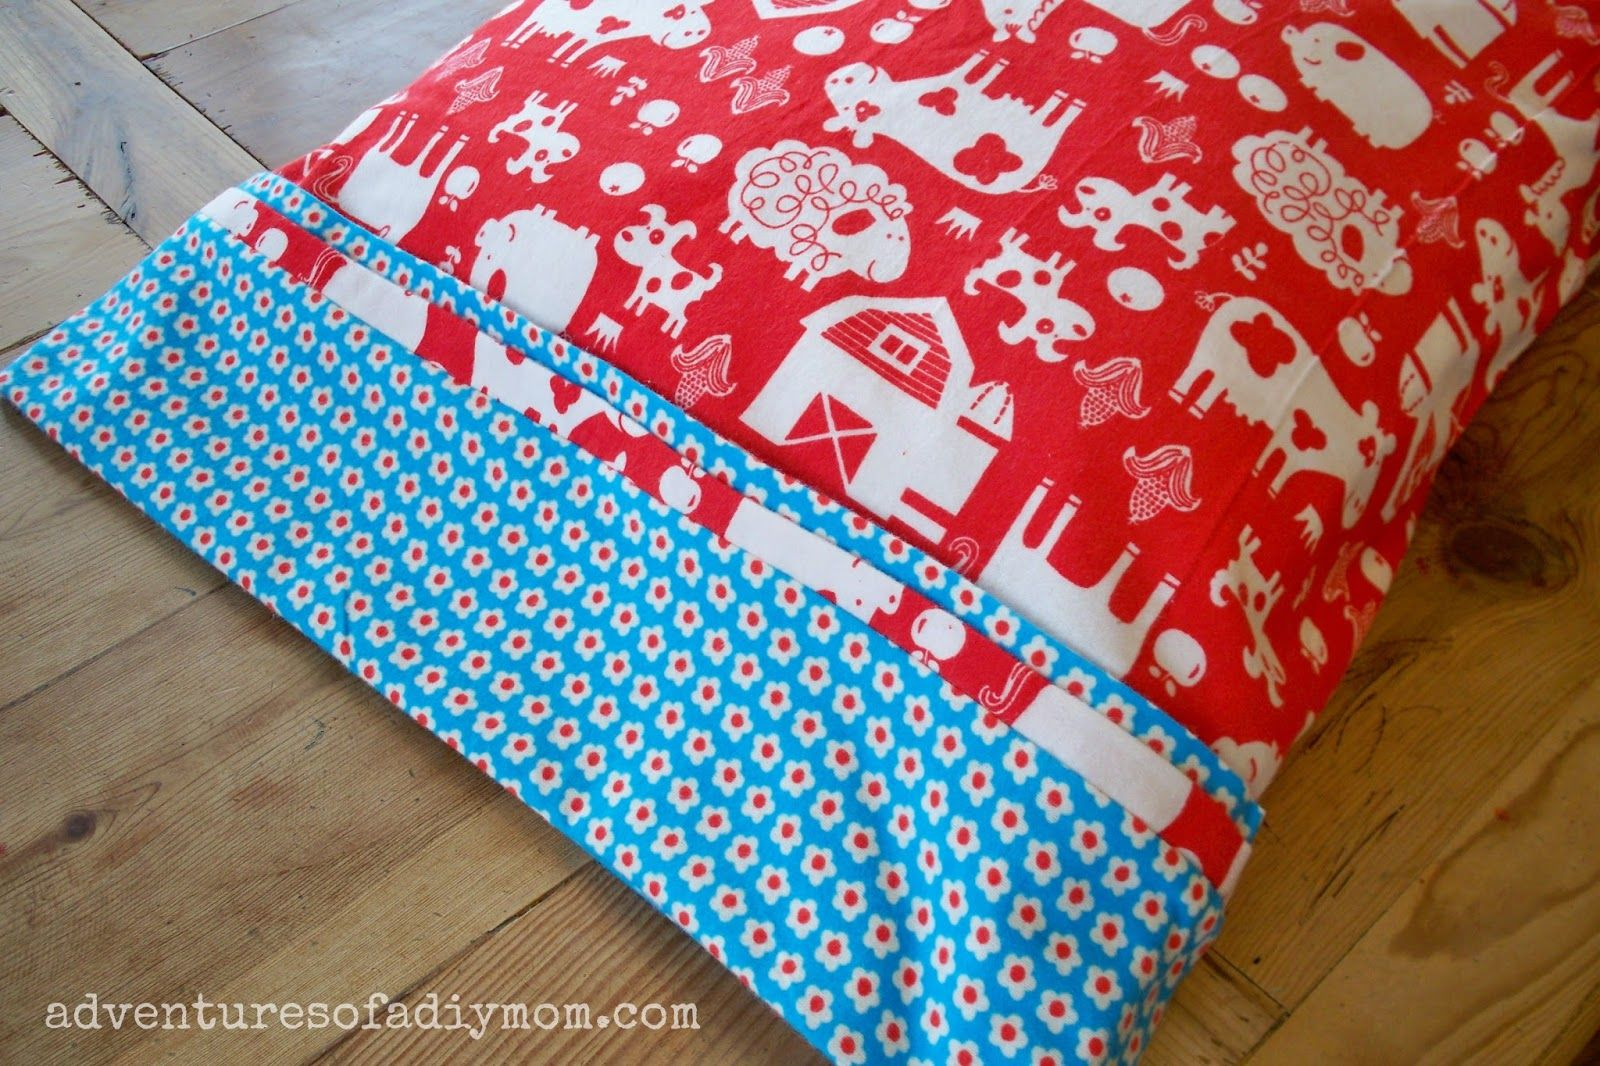 Making Pillowcases Fascinating How To Make An Easy Rolled Pillowcase With Only 3 Seams  Easy Design Decoration